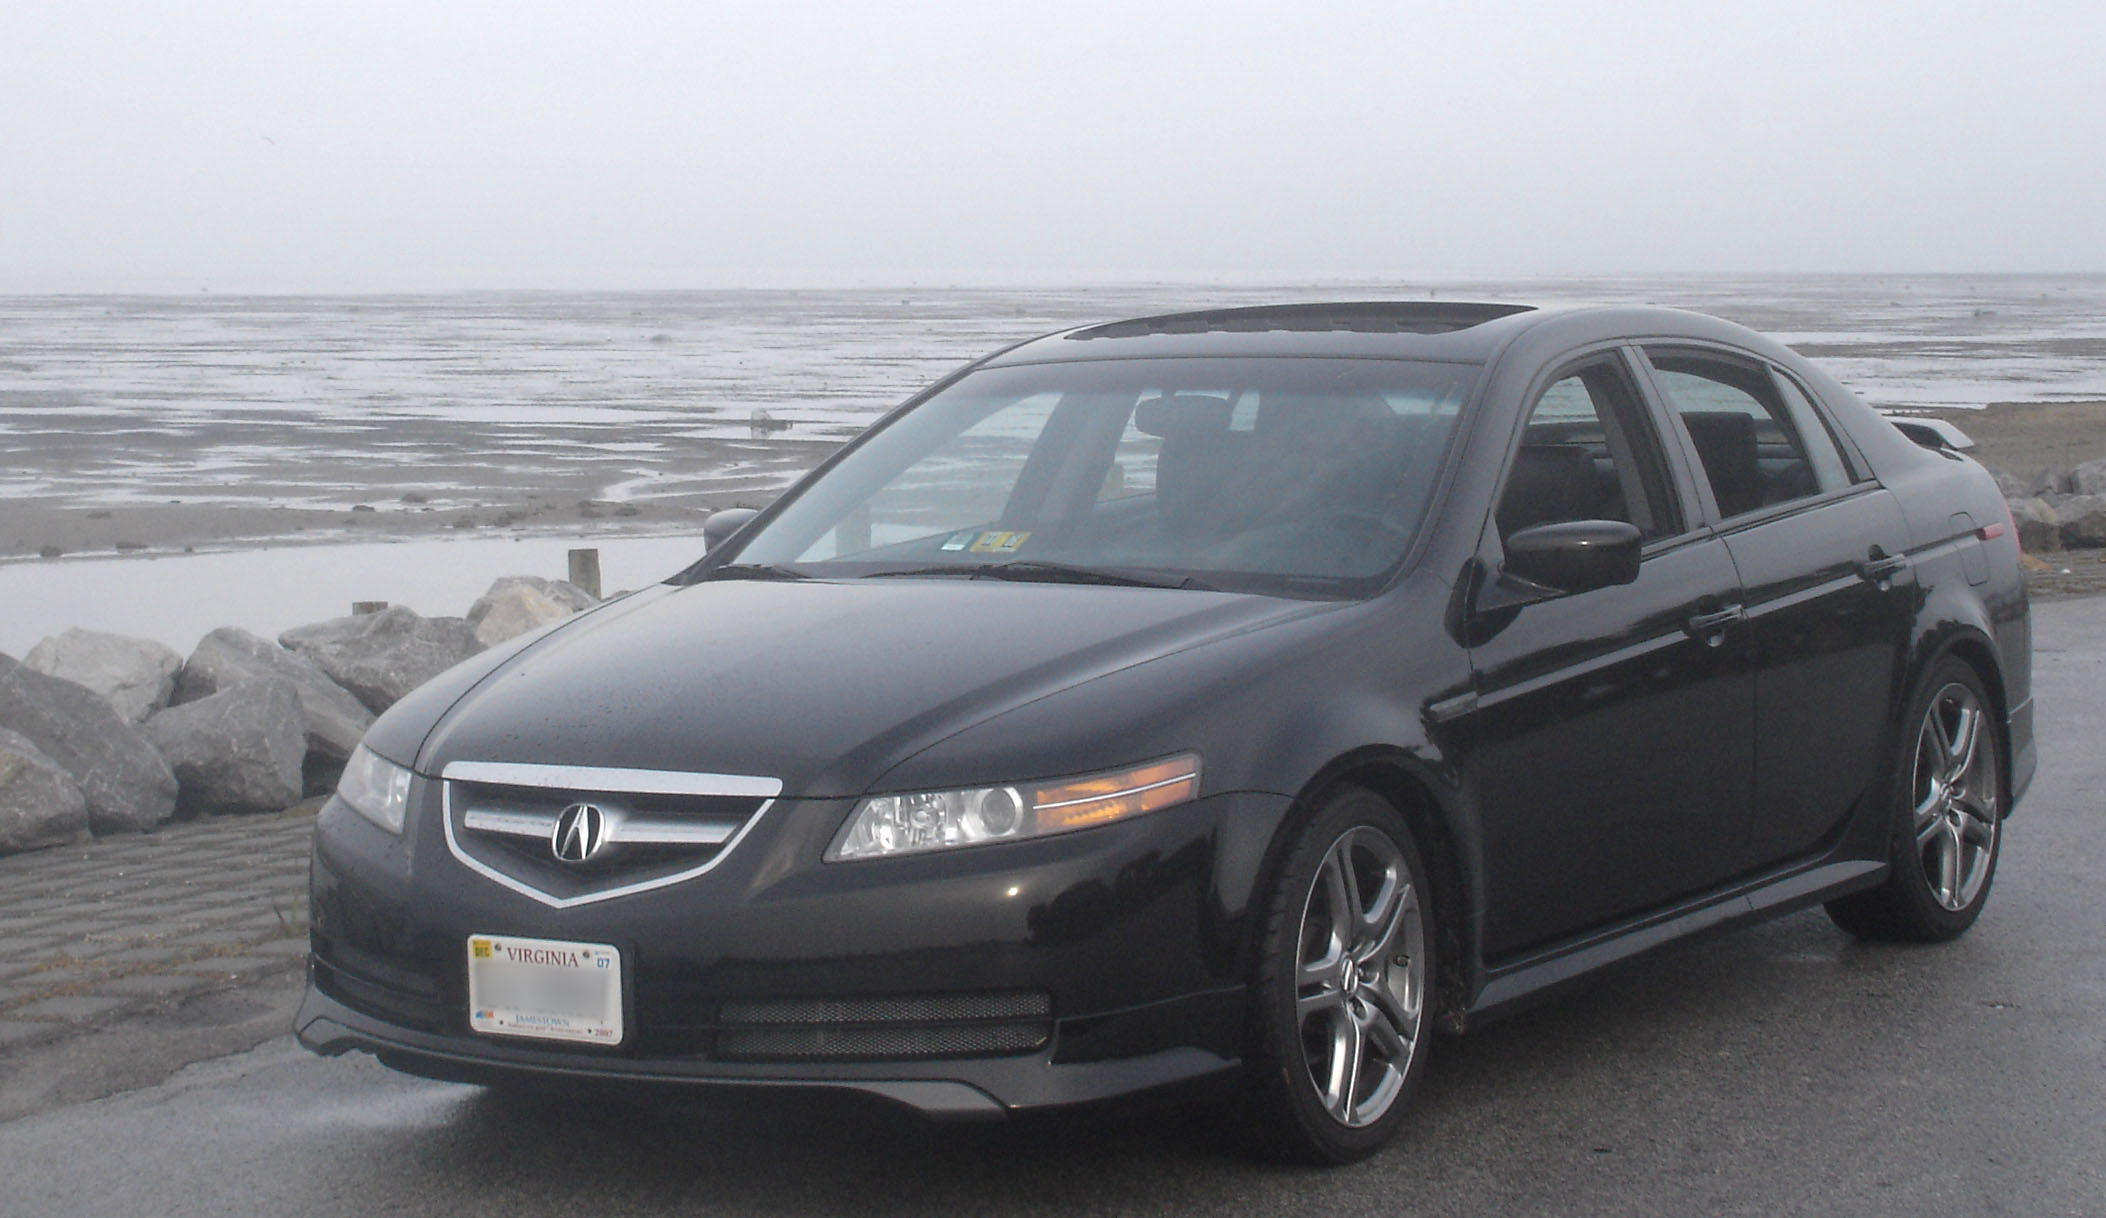 acura tl iv 2008 pictures #2